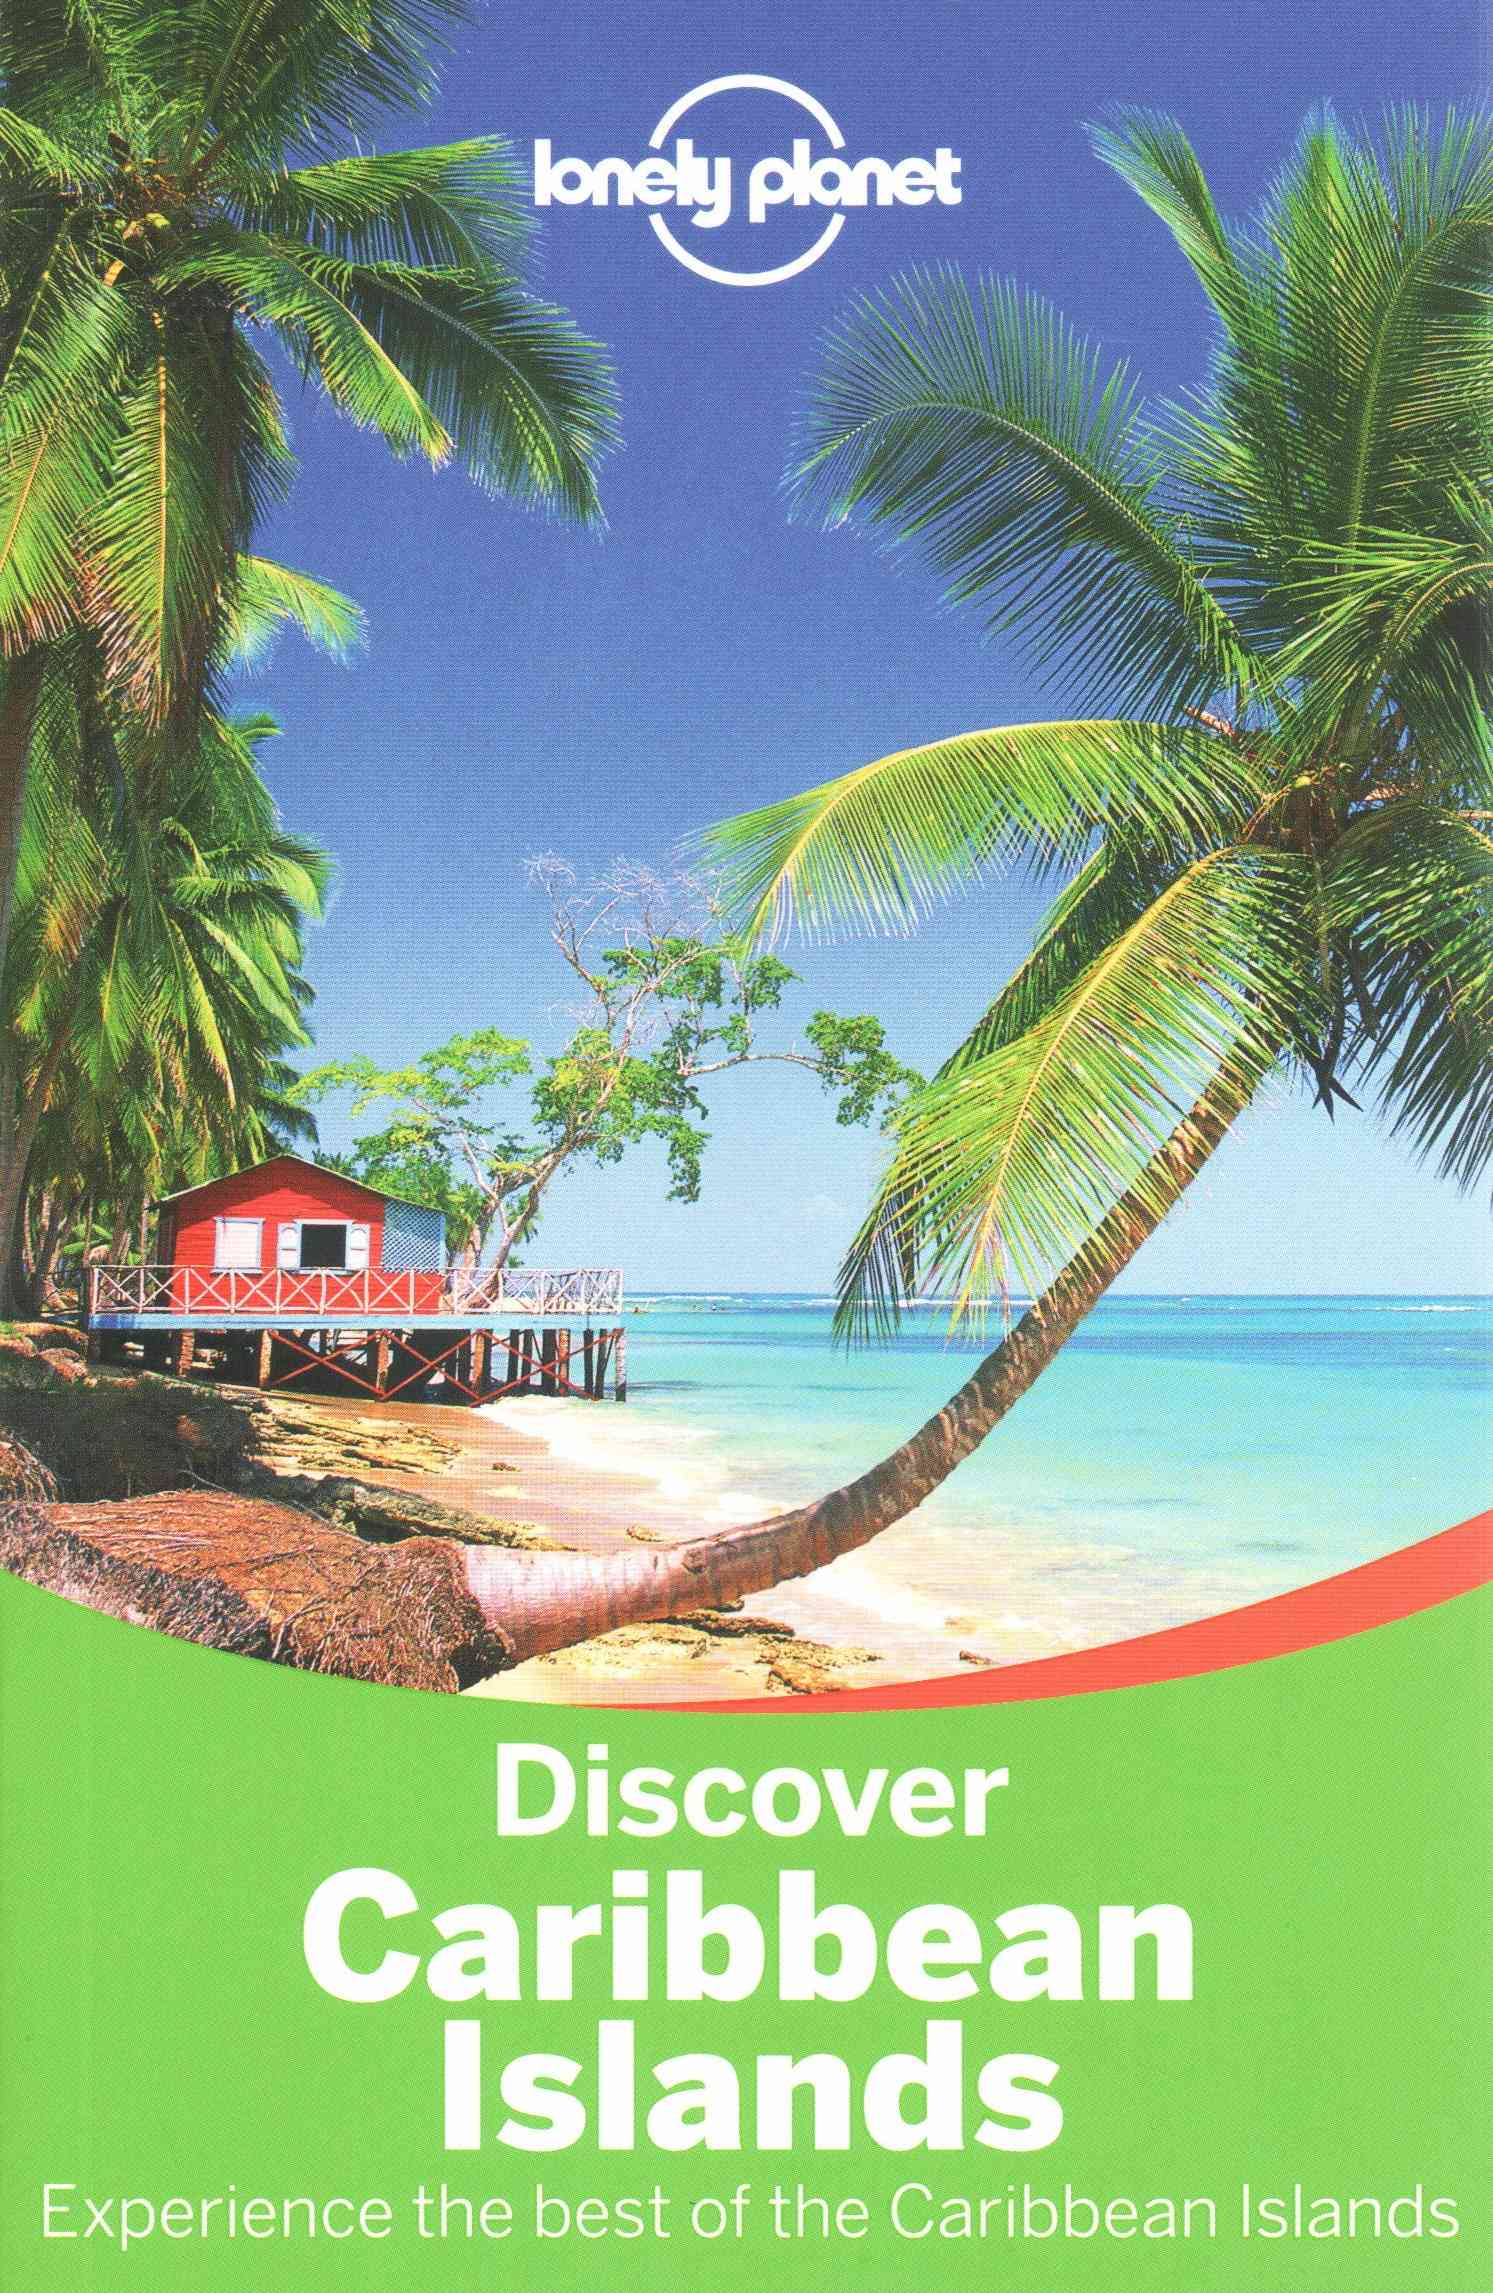 Lonely Planet Caribbean Islands Discover 1.